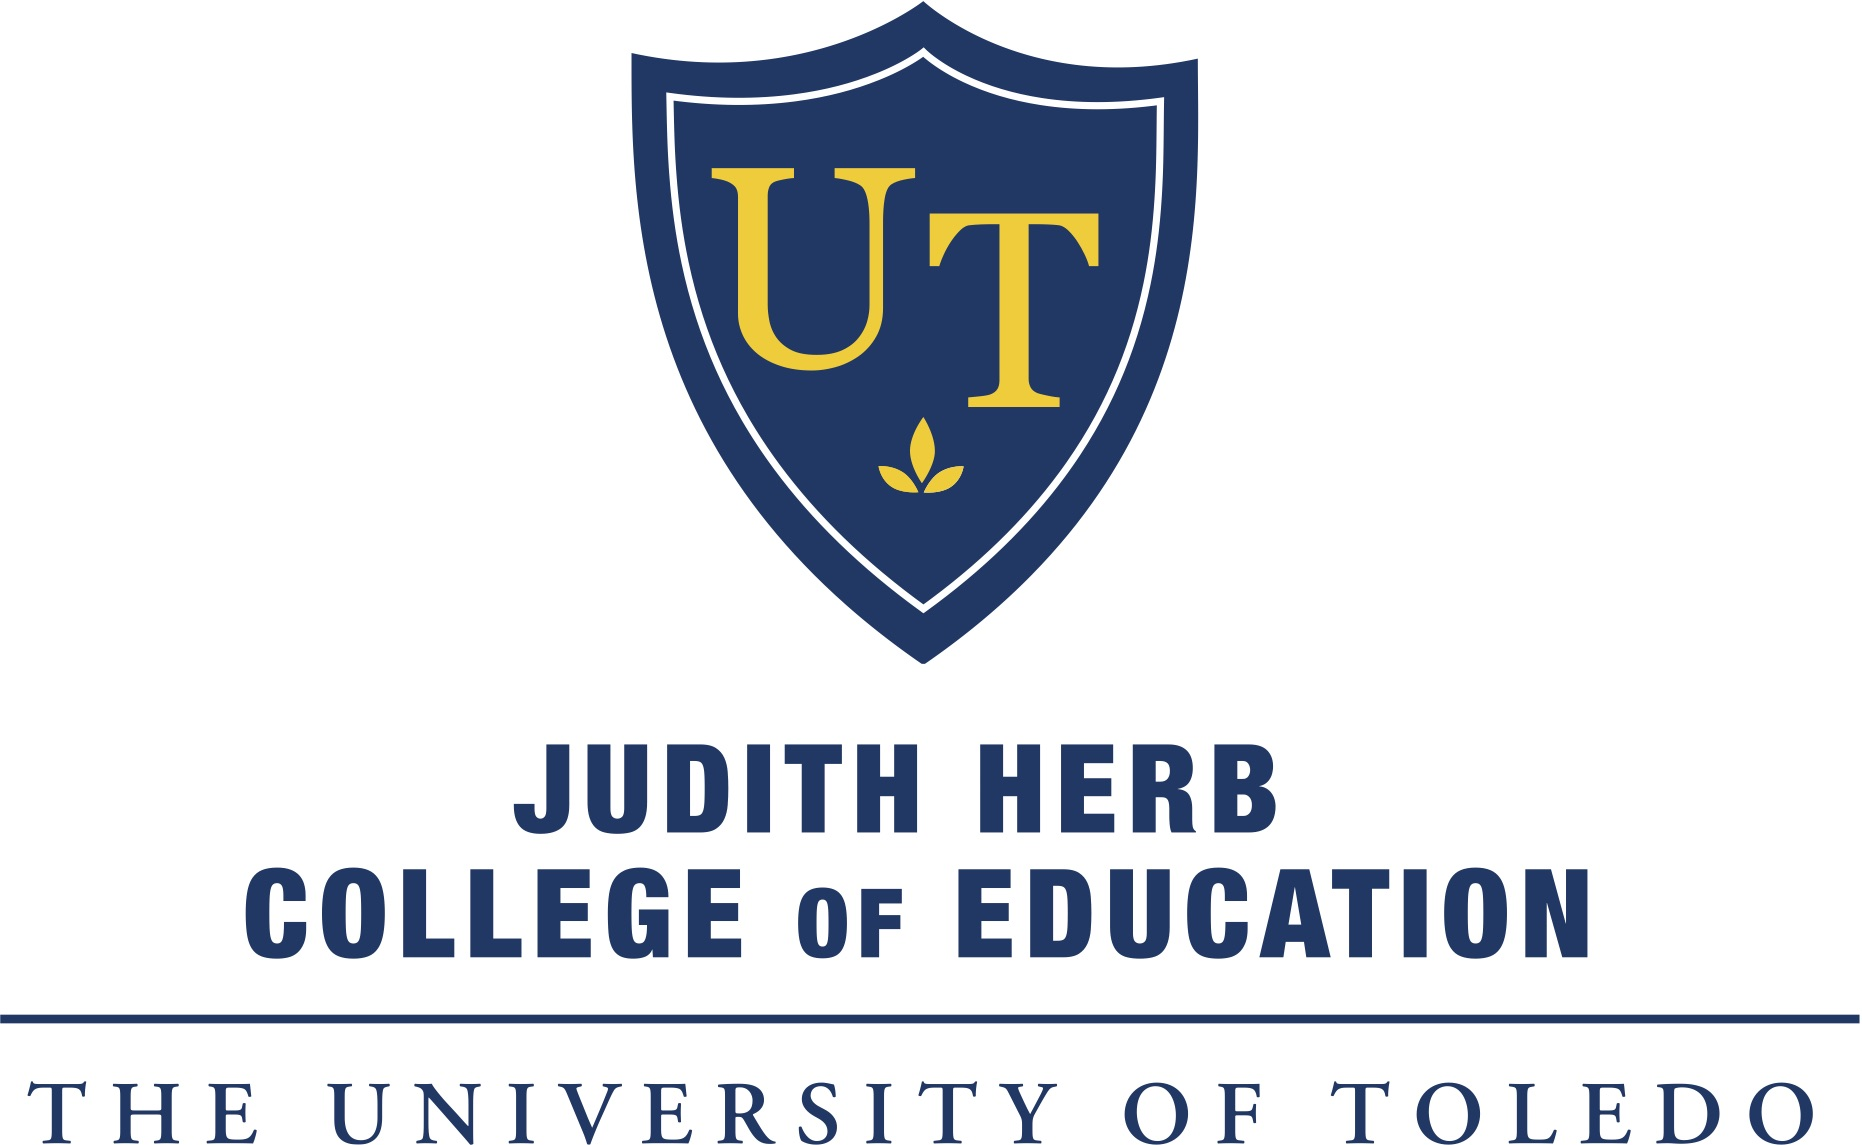 Judith Herb College of Education